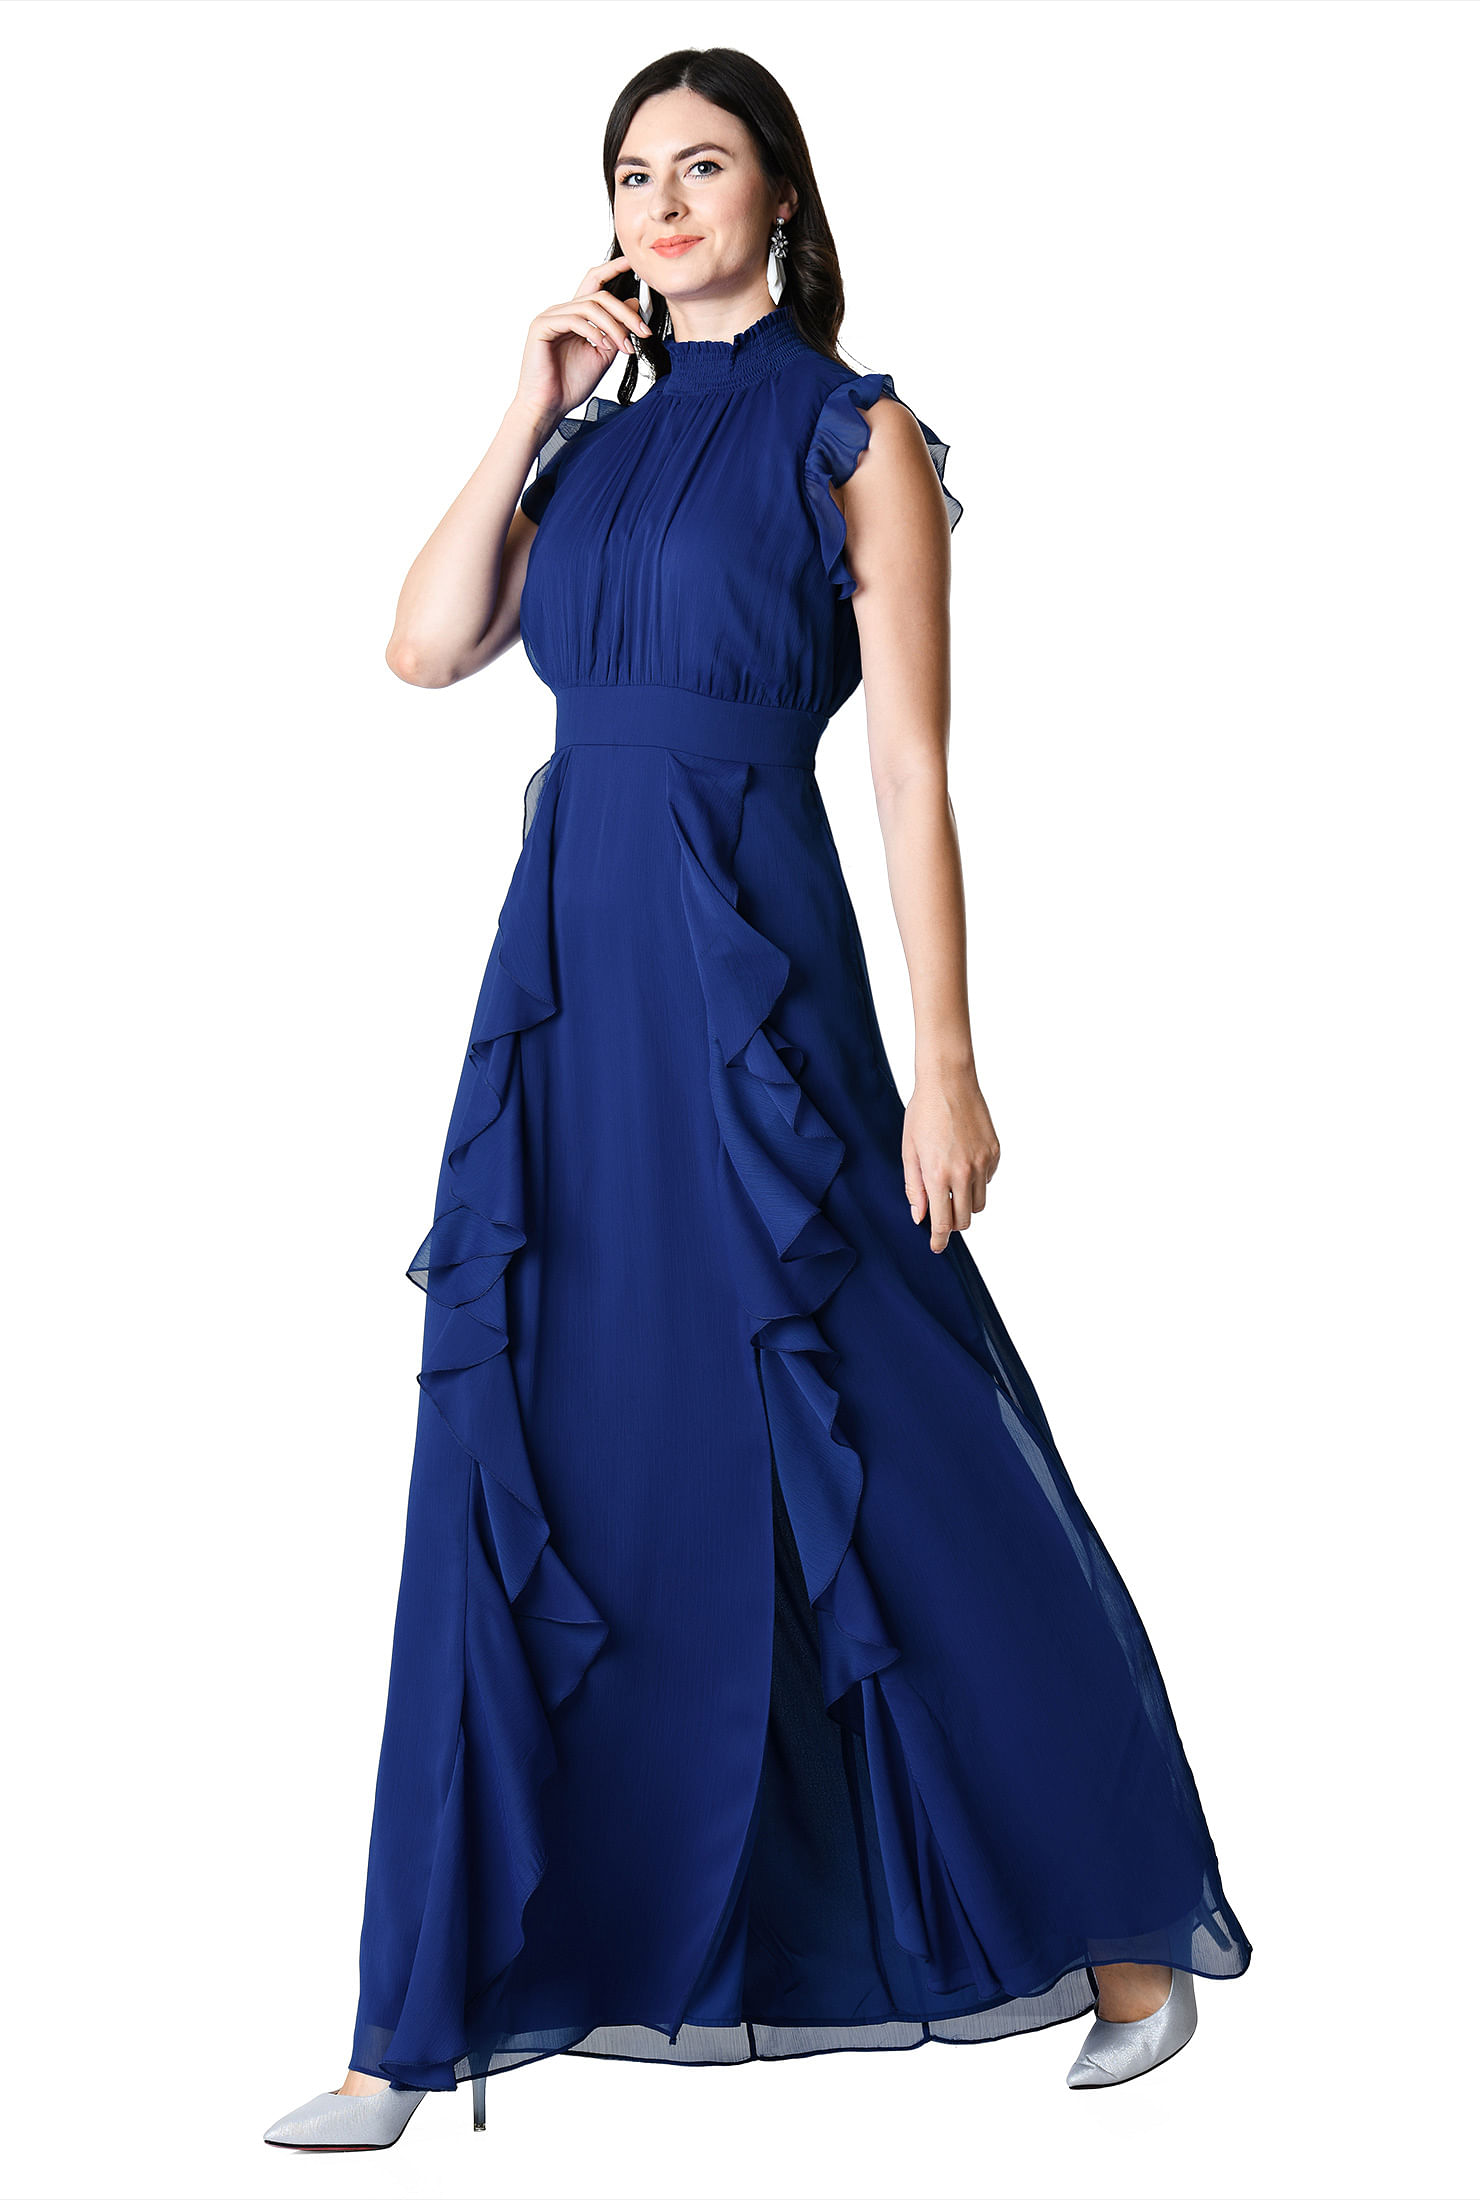 6e715bdcb351 ... Ruffle chiffon smocked maxi dress. Out of Stock. , boho dresses, Fit  and flare dresses, Flutter sleeve dresses, full length with